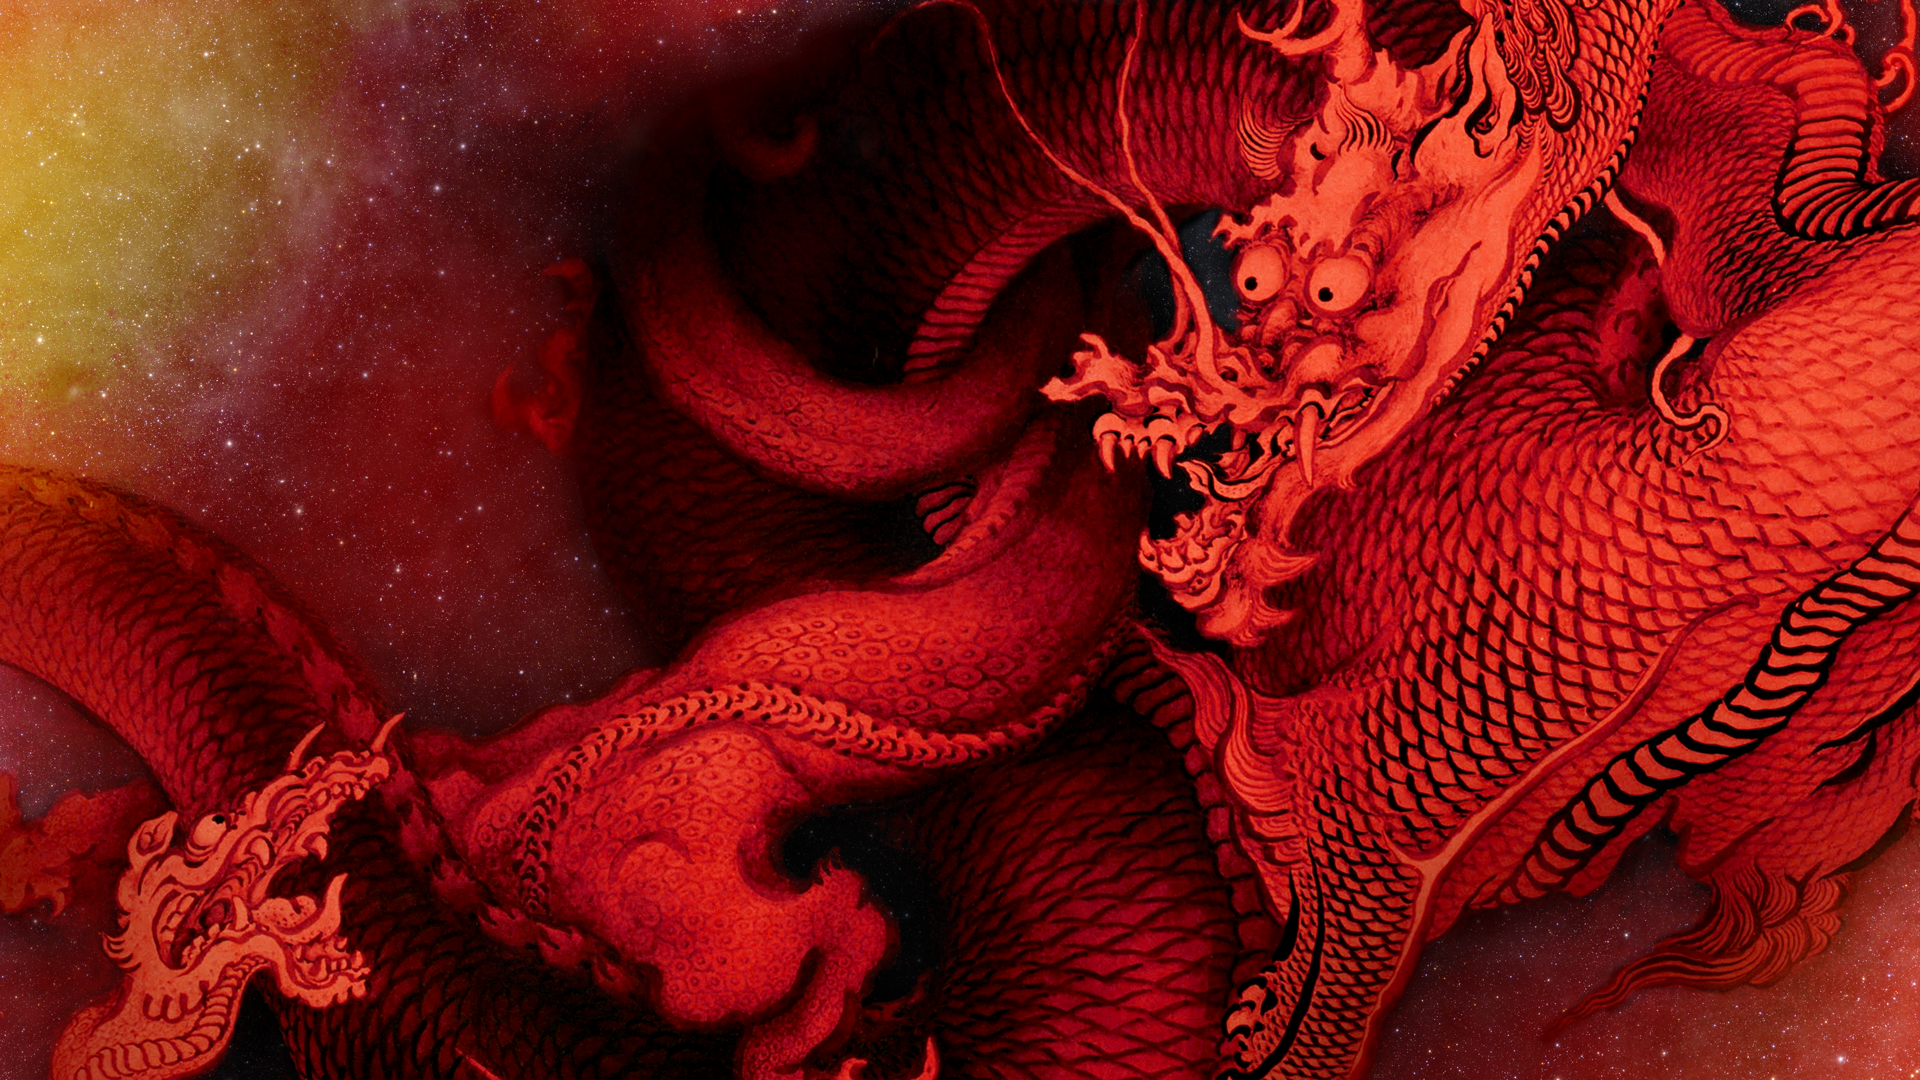 [OC] Dragon Space Wallpaper (wide/4k in comments